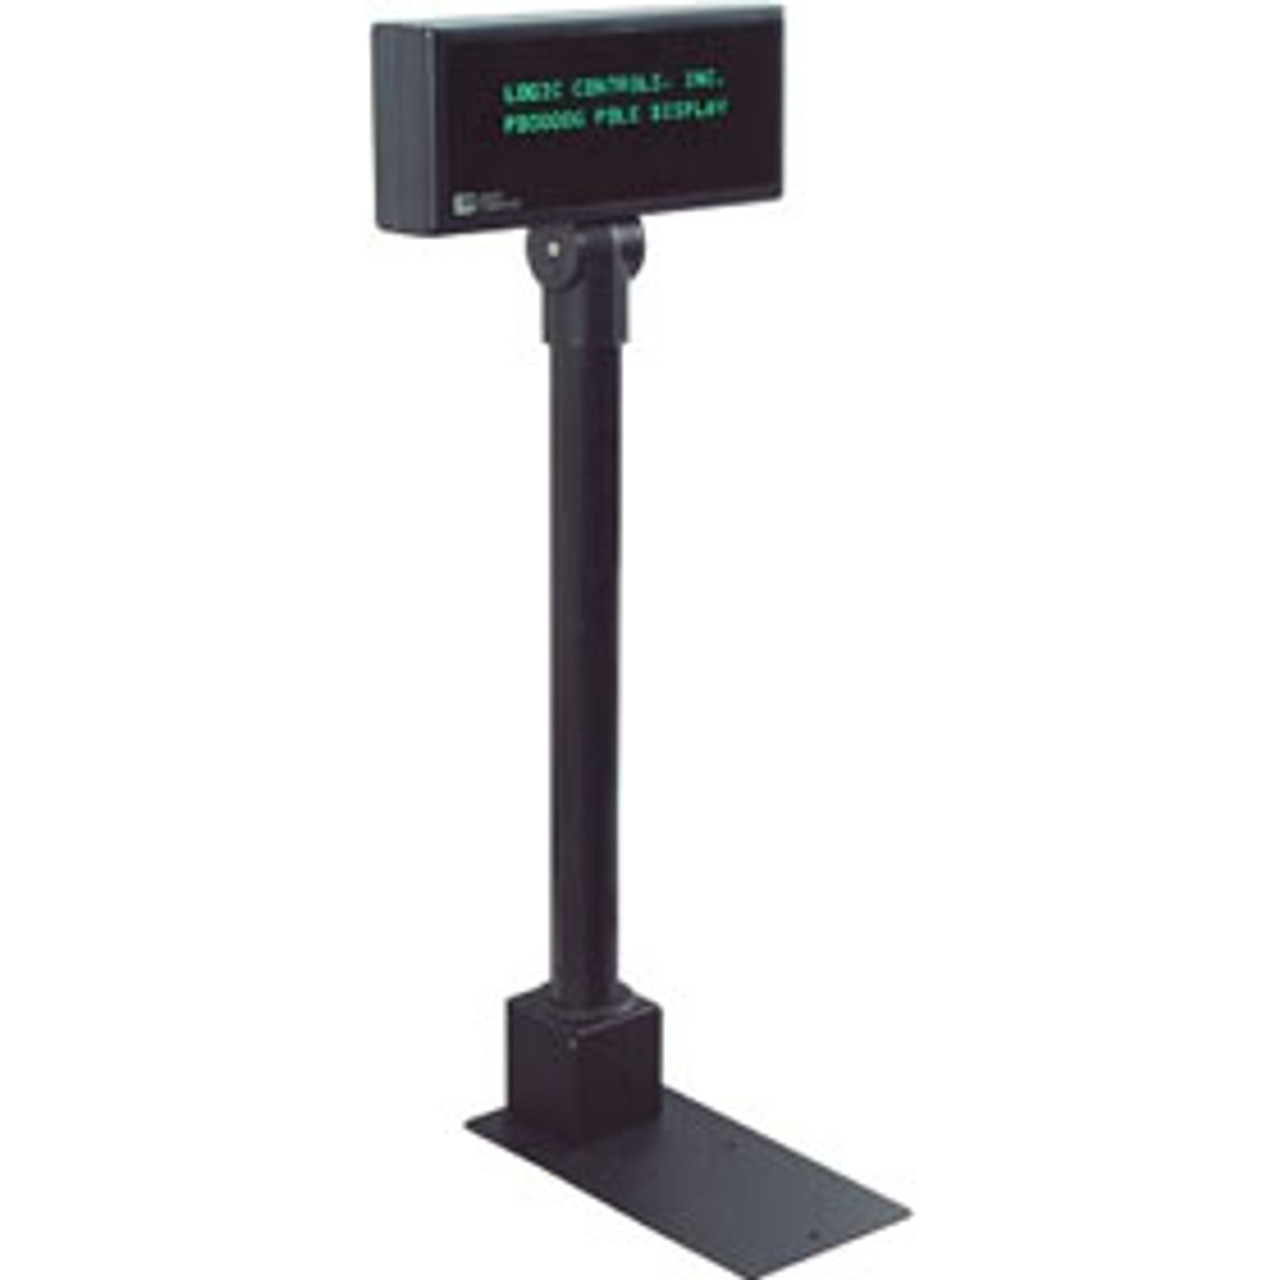 Logic Controls PD3900U-BK POS Pole Customer Display